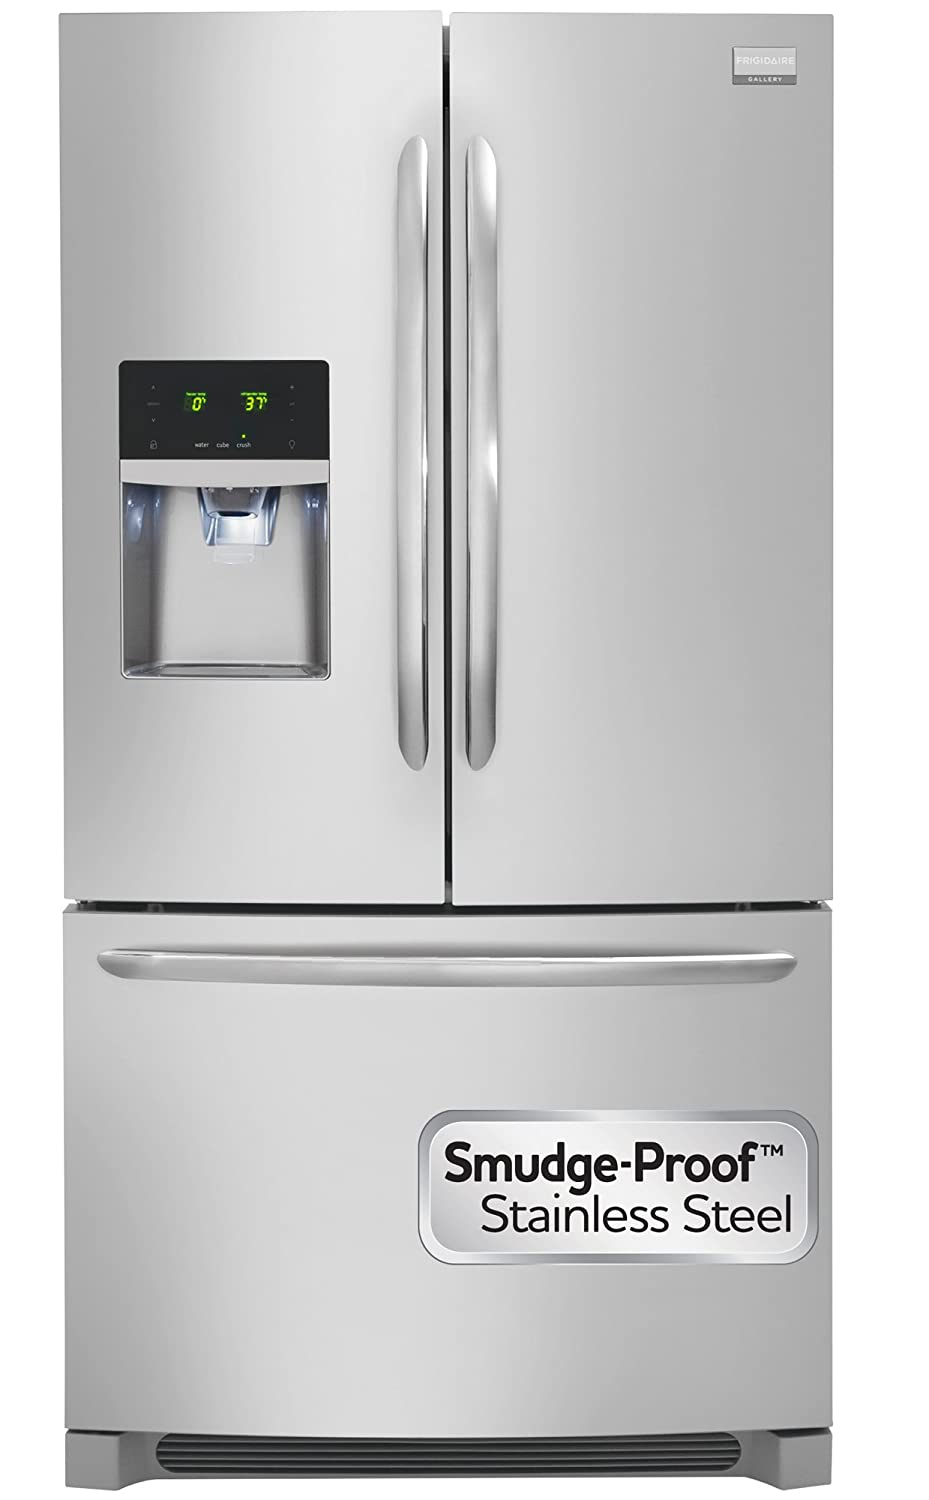 Uncategorized Frigidaire Gallery Kitchen Appliance Packages amazon com frigidaire gallery appliance package with french door refrigerator double oven convection range integrated dishwash